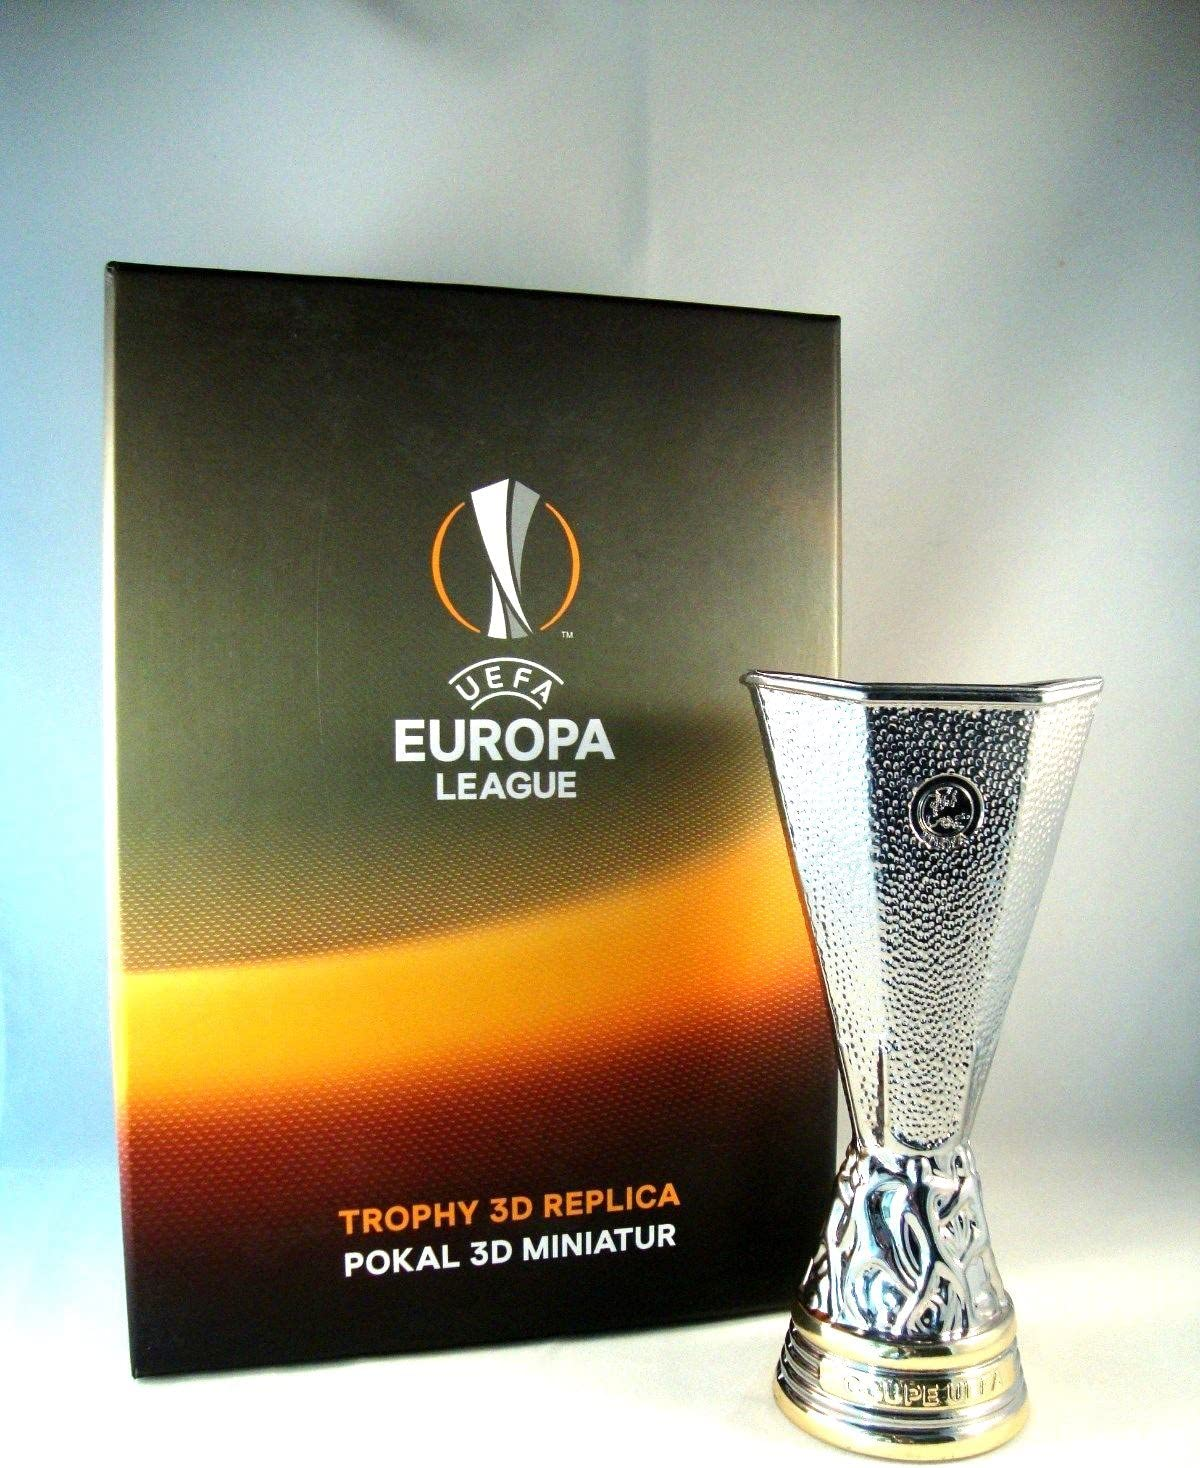 uefa europa league trophy 150 mm amazon co uk sports outdoors uefa europa league trophy 150 mm